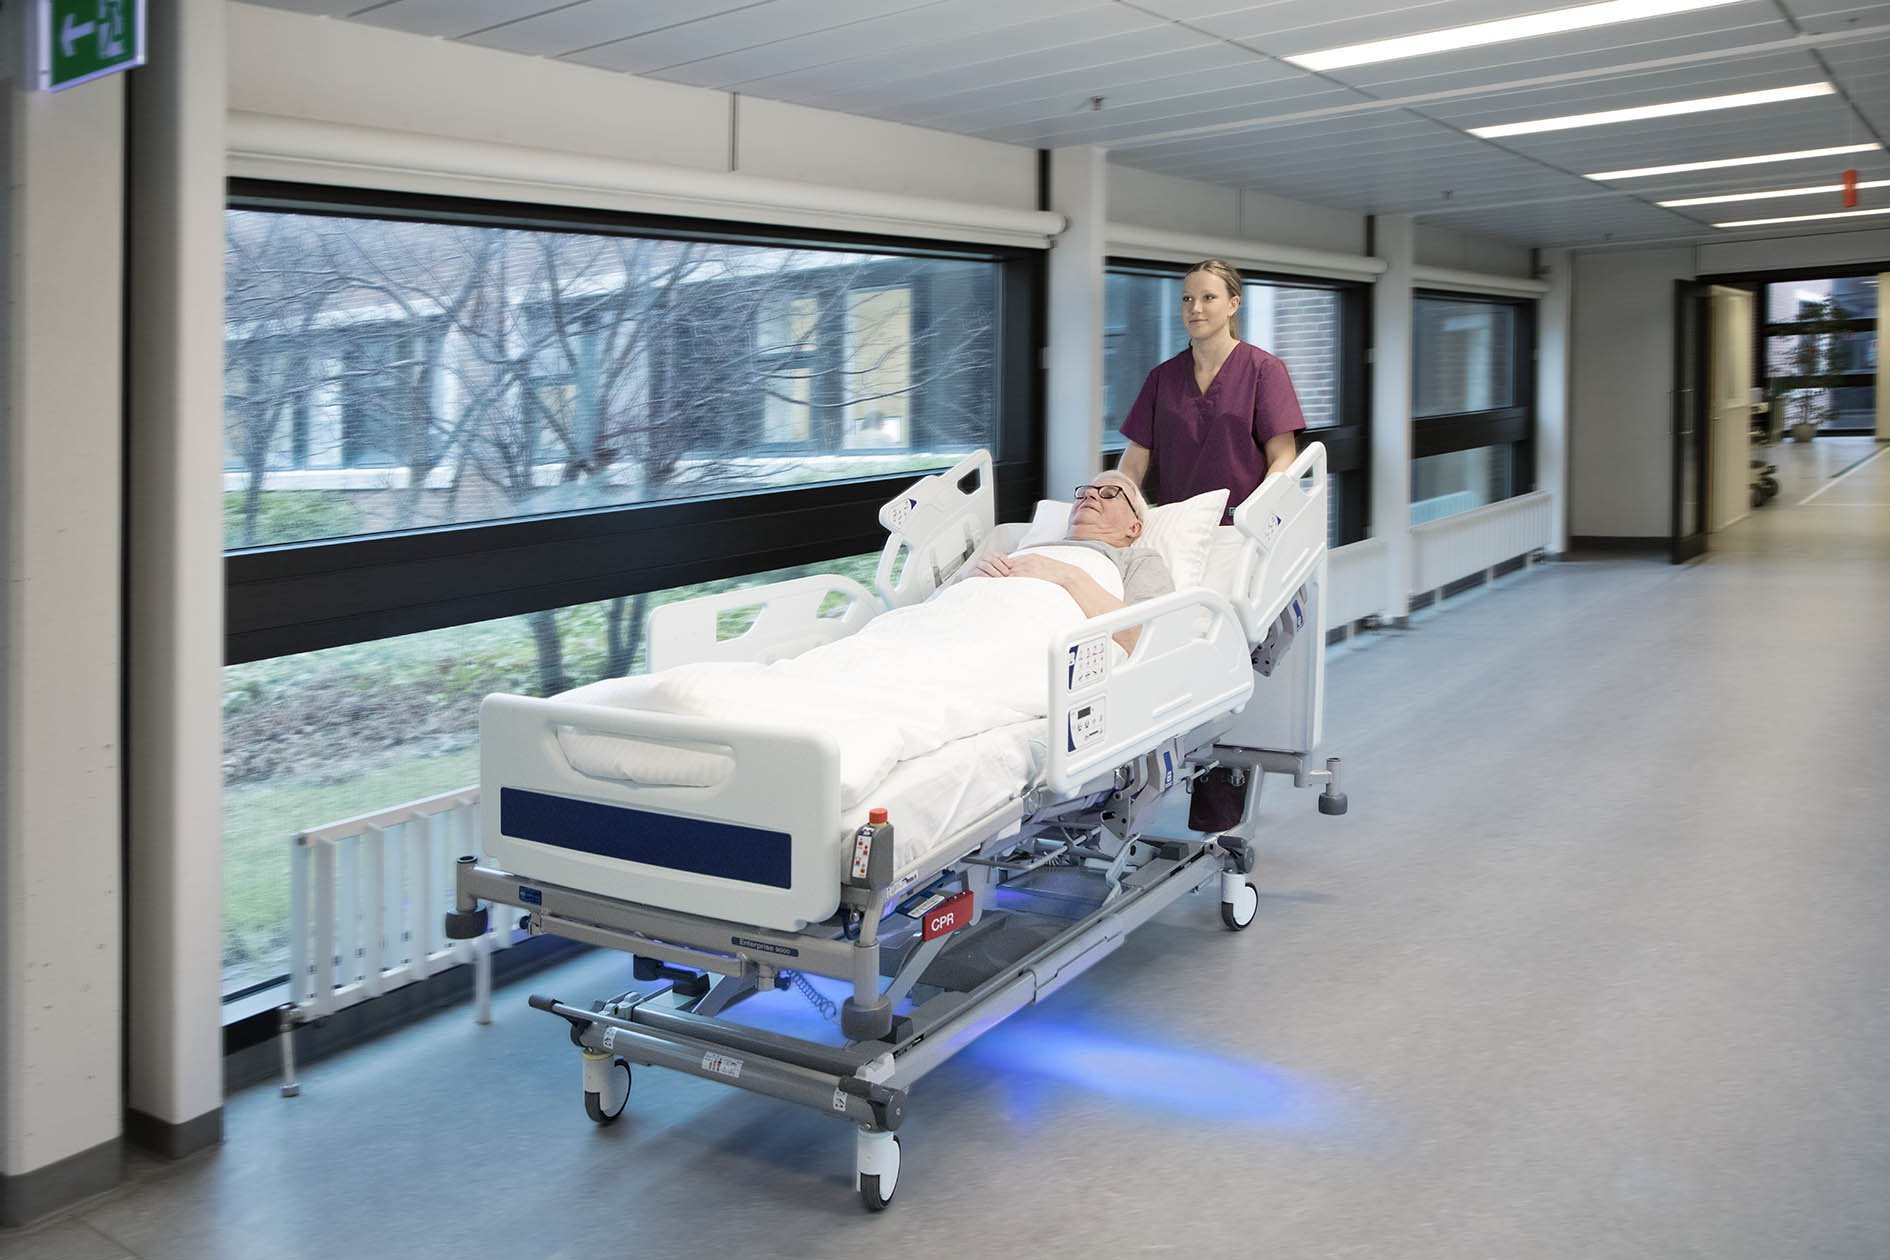 The ergonomic effects on caregivers when transporting patients in hospital beds